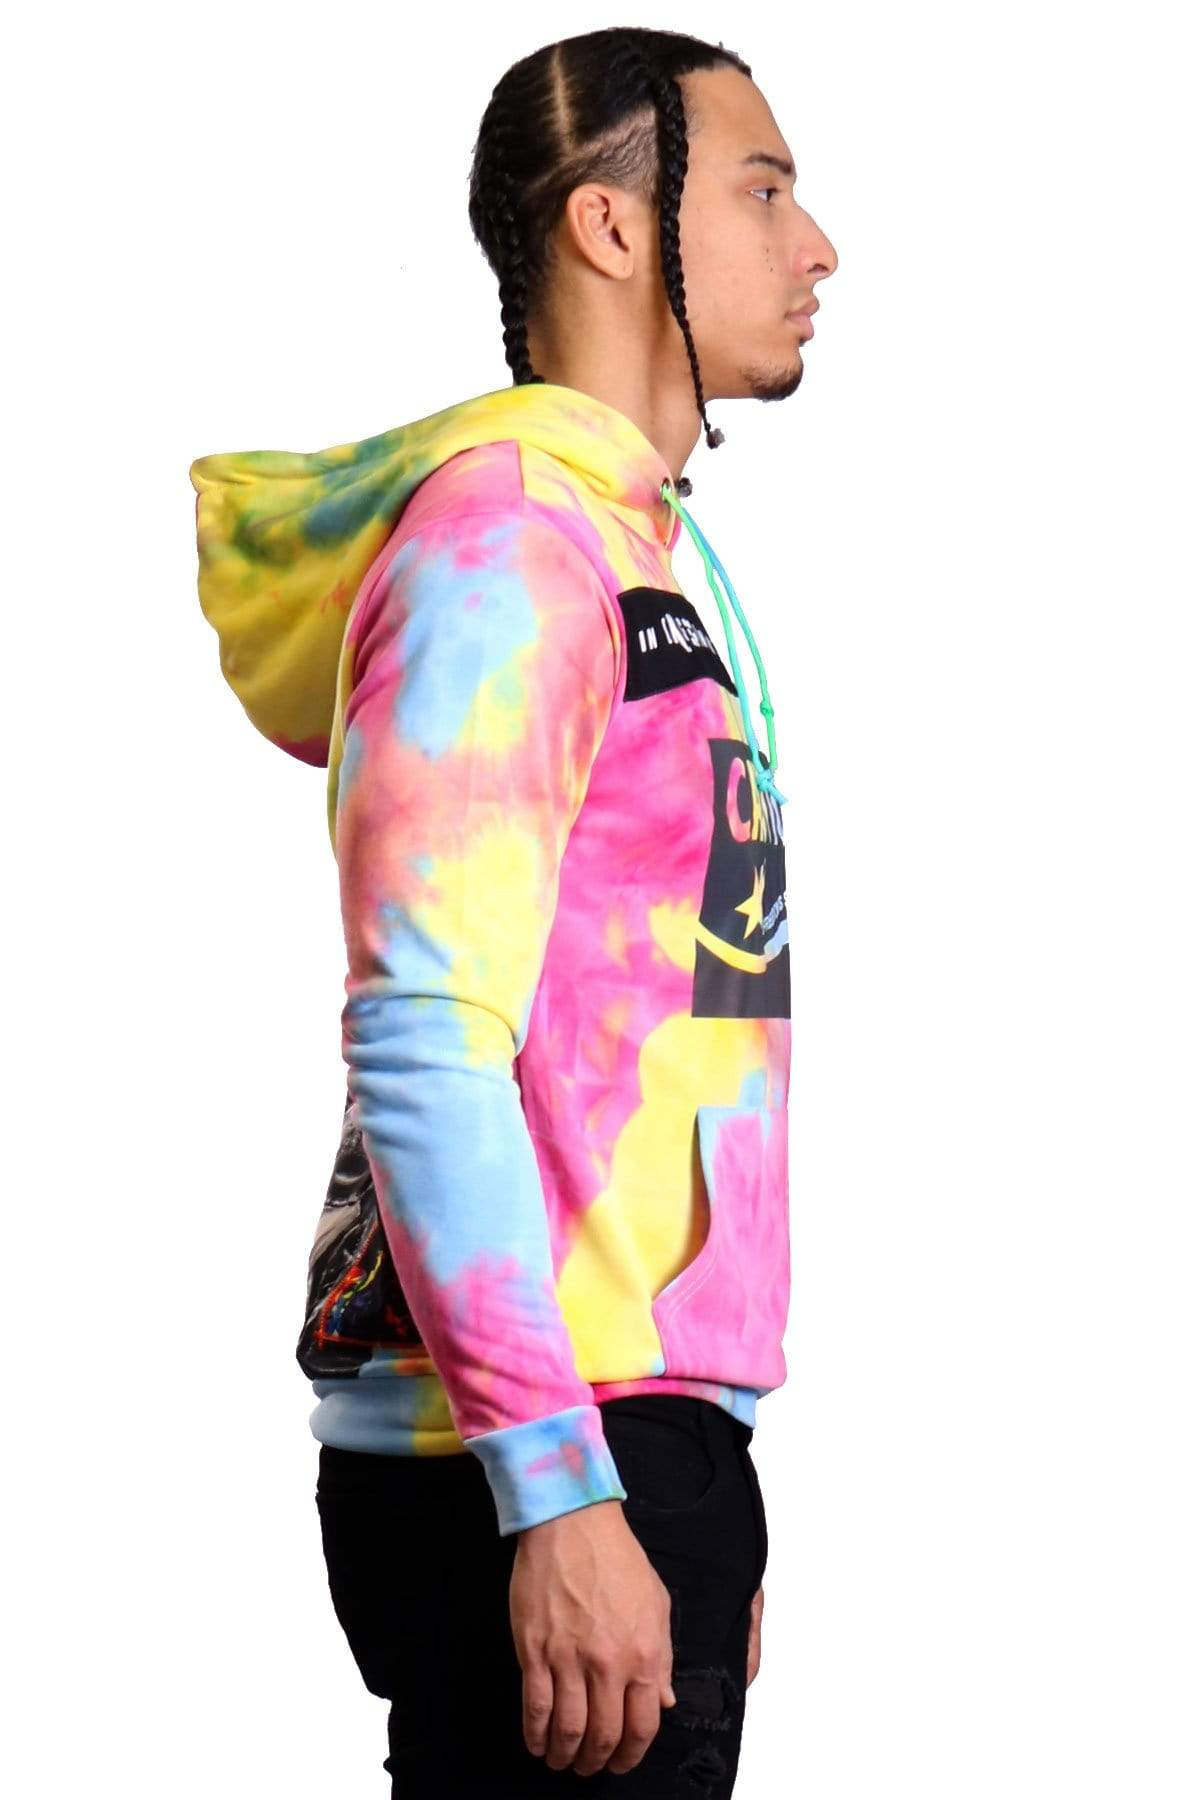 KLEEP Men's Sweatshirt Lollipop Men's Premium Tie dye Pullover Hoodie